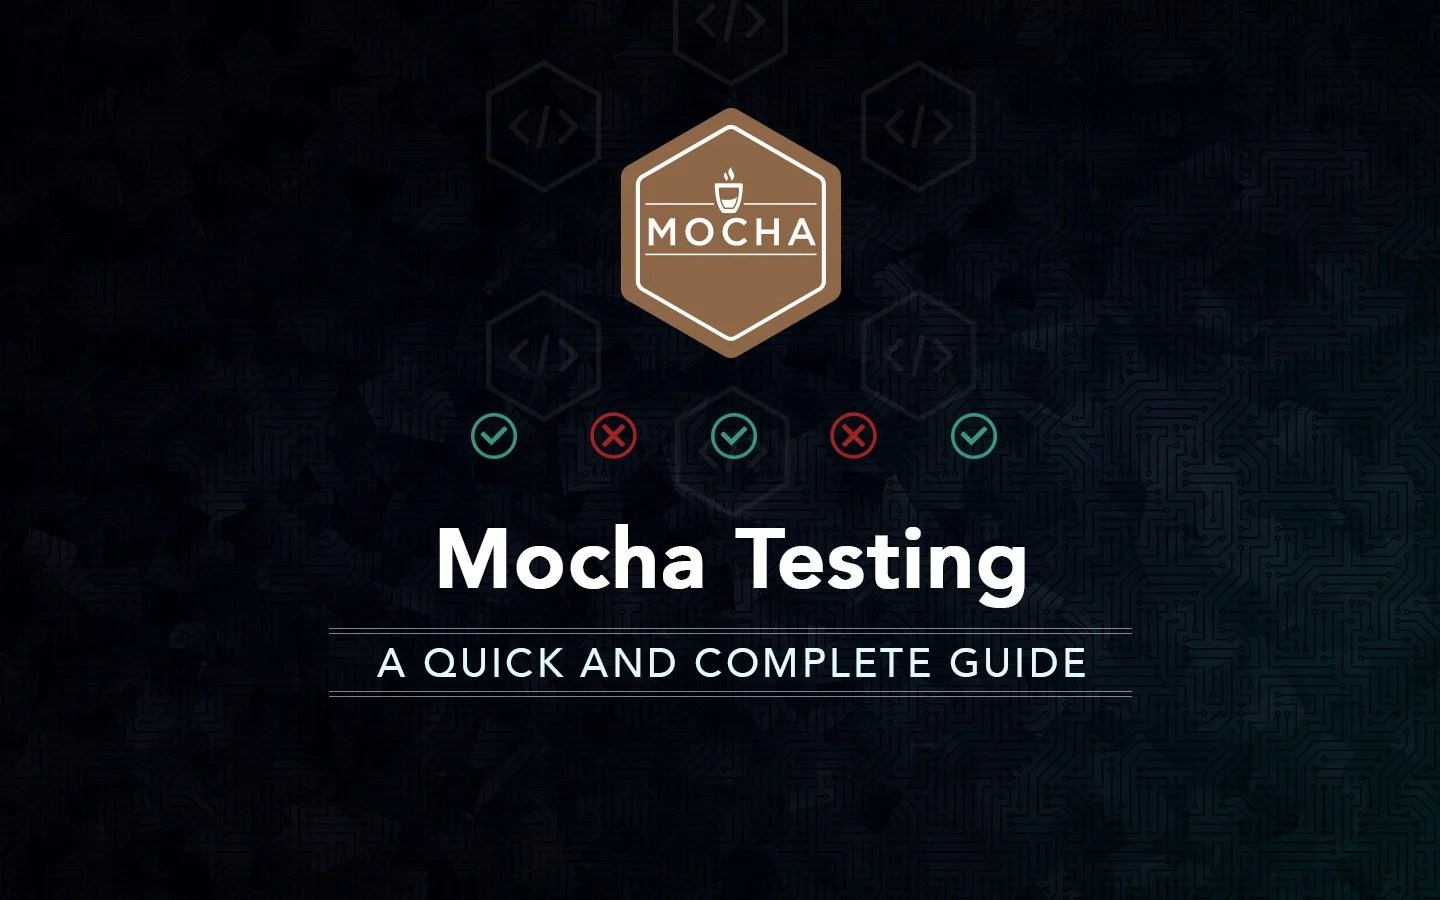 A quick and complete guide to Mocha testing - LogRocket Blog